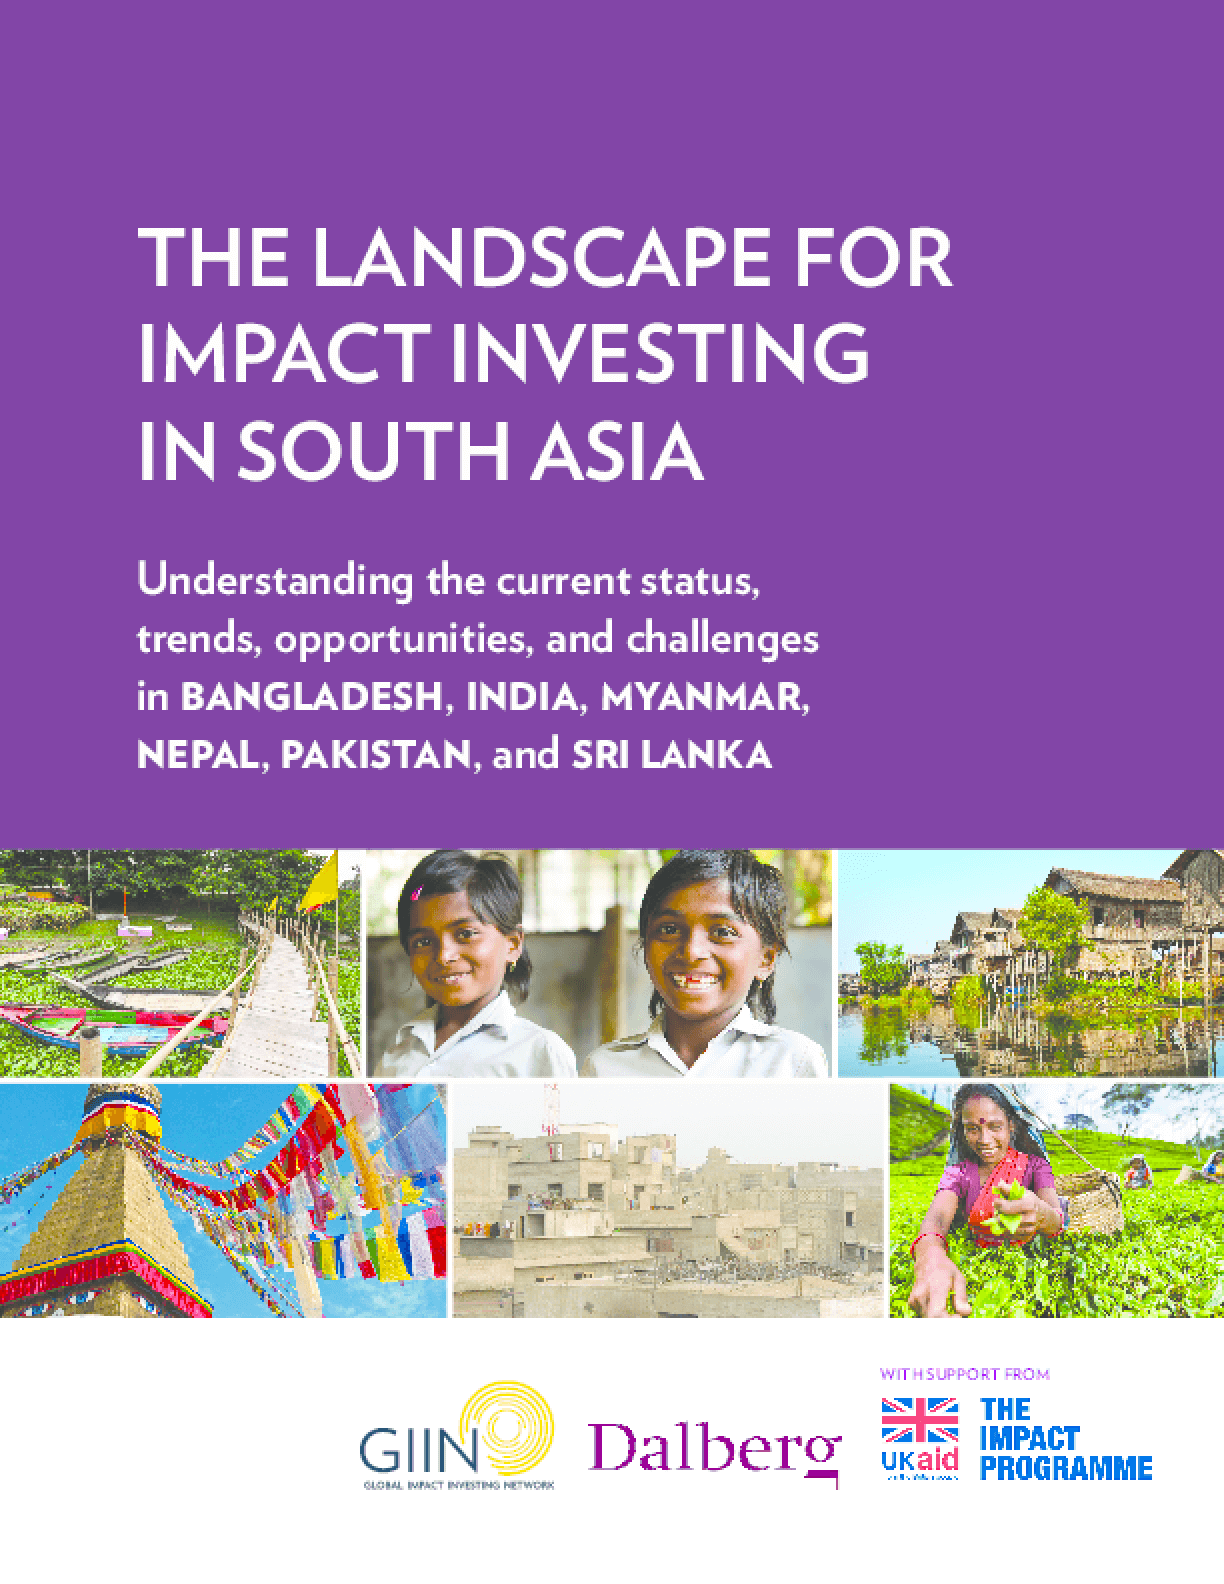 The Landscape for Impact Investing in South Asia: Understanding the Current Status, Trends, Opportunities, and Challenges in Bangladesh, India, Myanmar, Nepal, Pakistan, and Sri Lanka